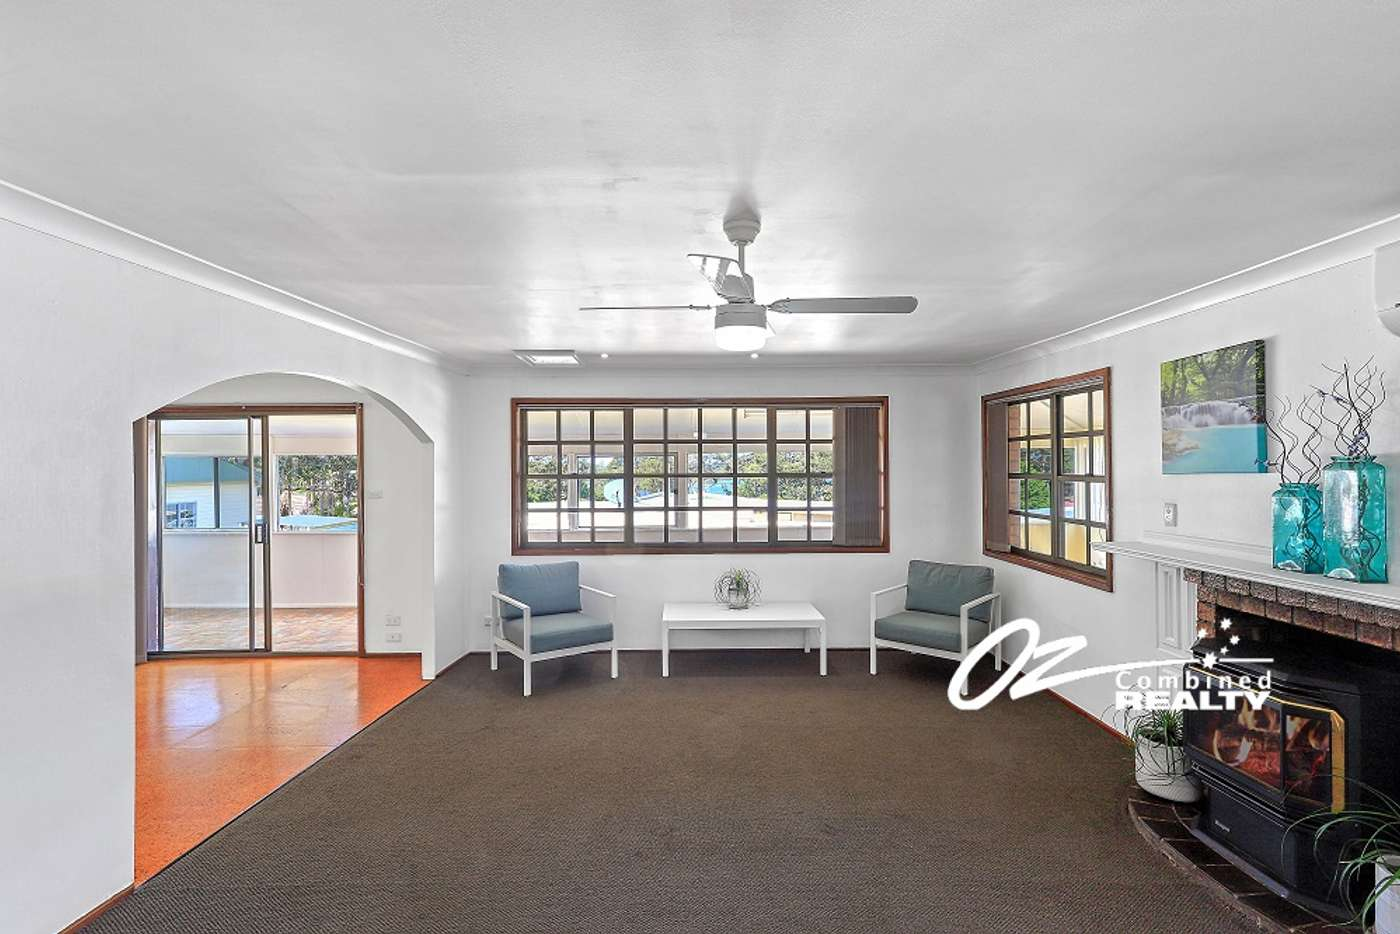 Sixth view of Homely house listing, 65 Macleans Point Road, Sanctuary Point NSW 2540